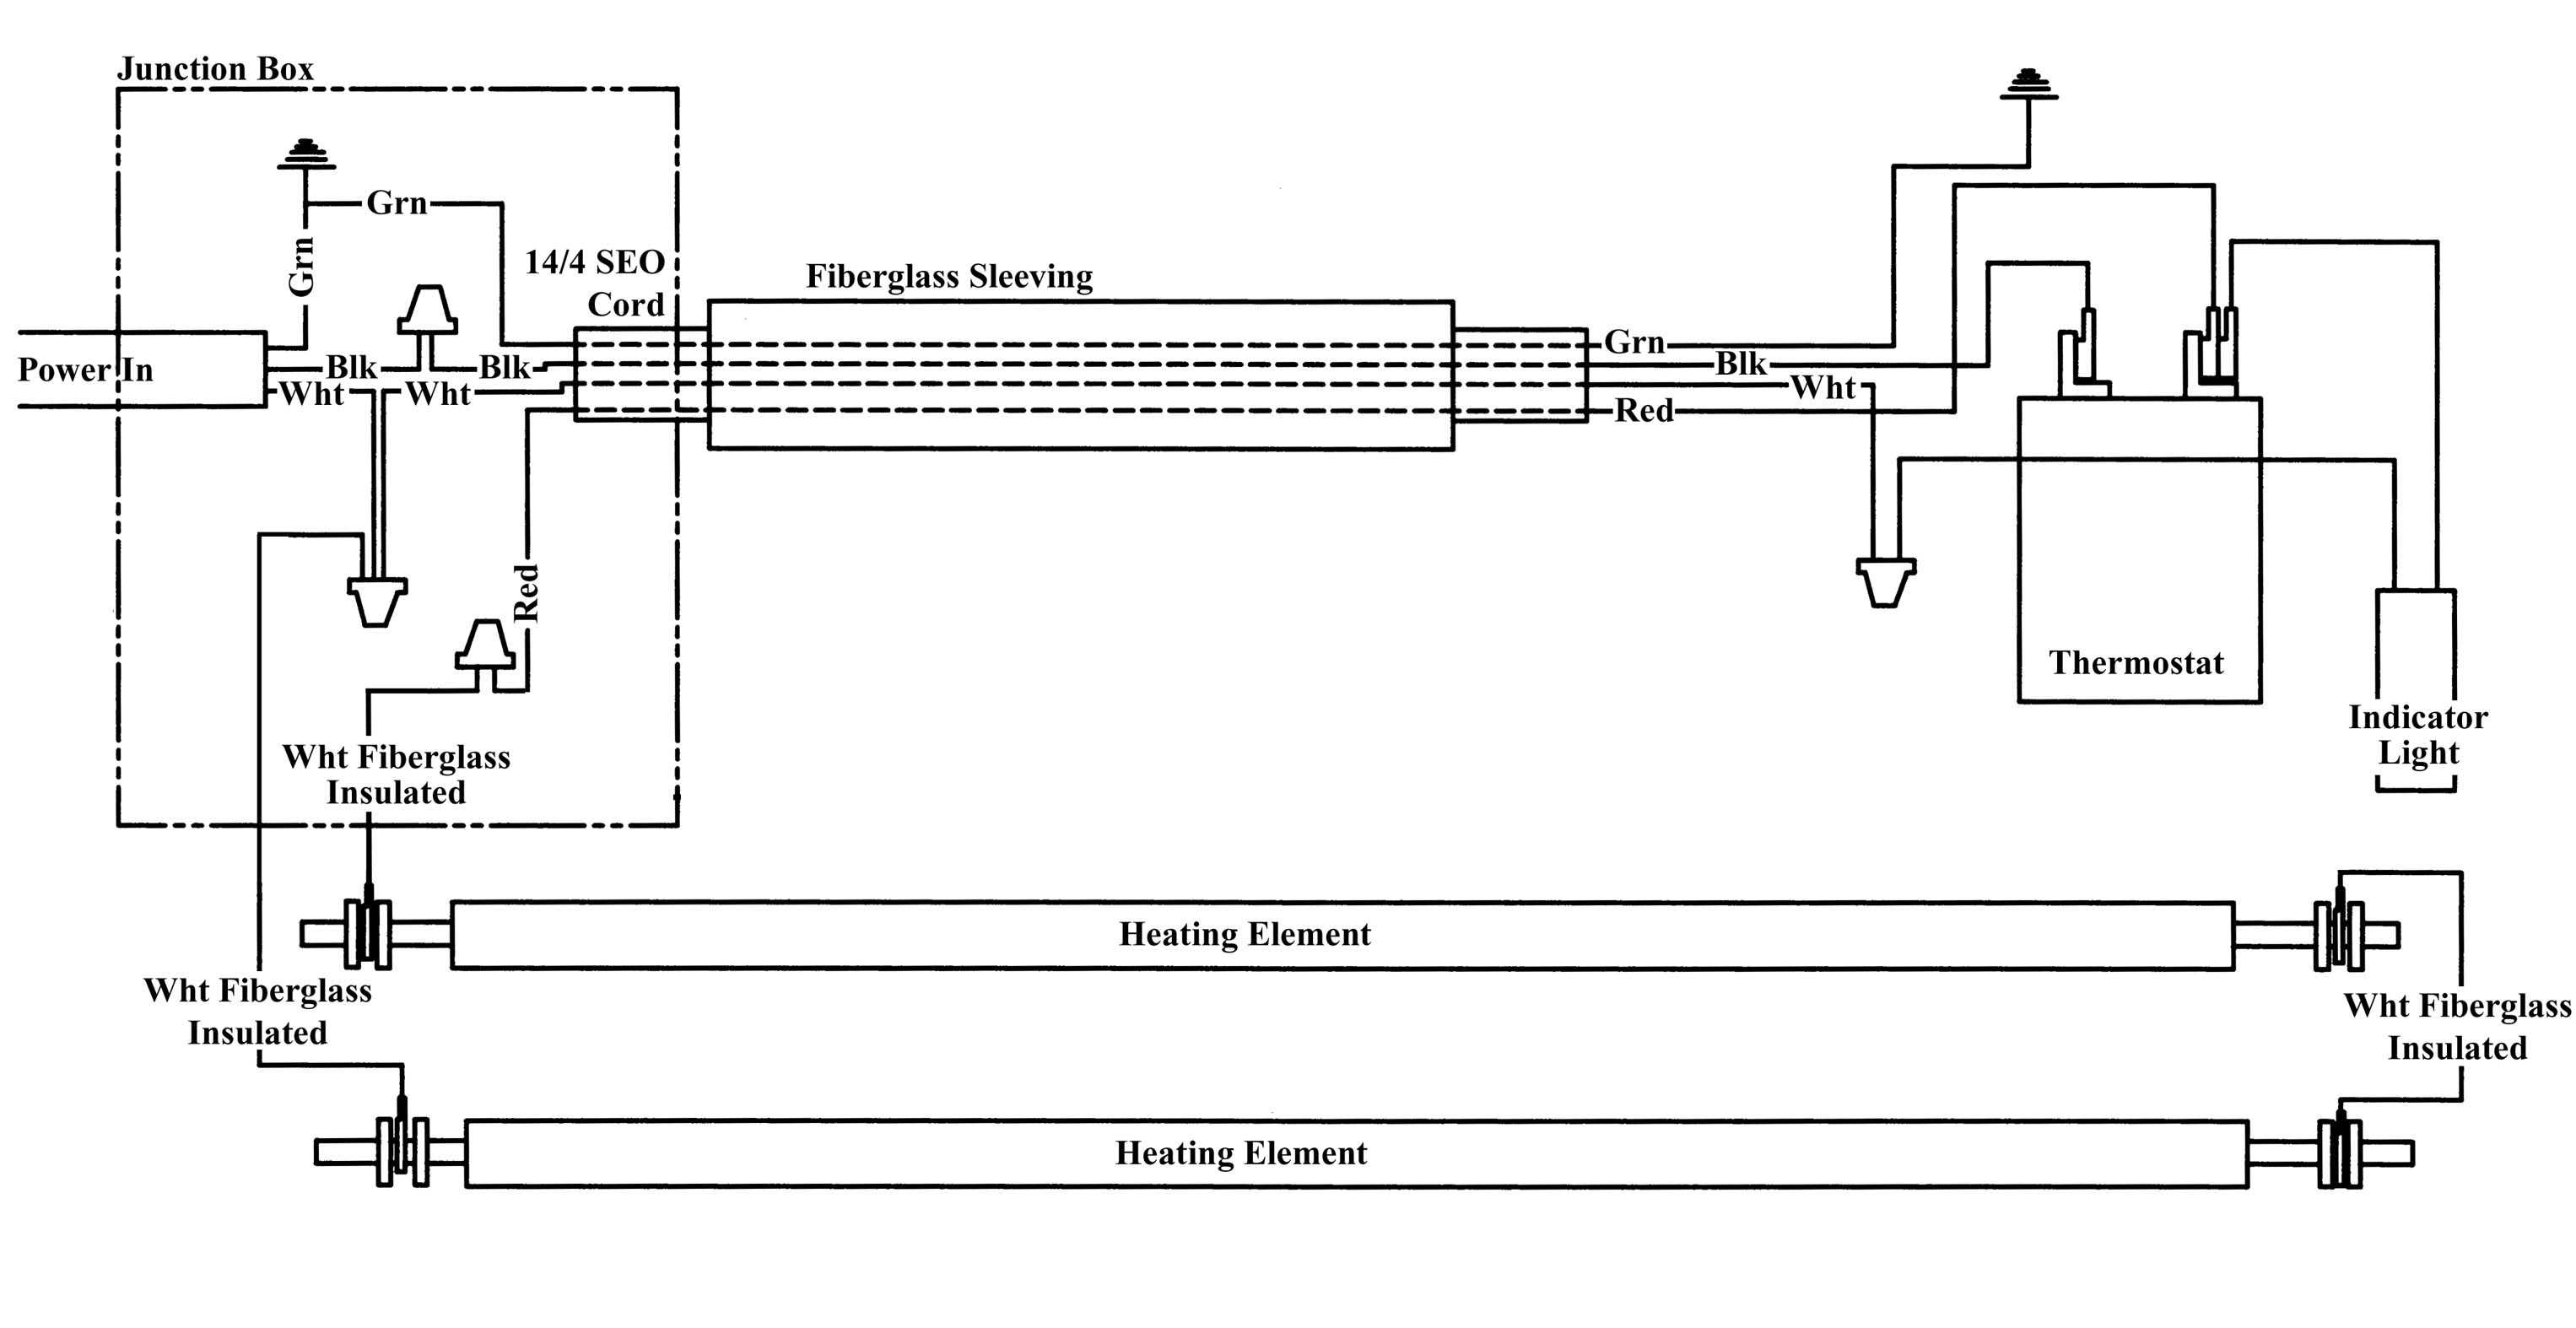 Single Element Wiring Diagram Another Blog About Hot Water Phase 480v Light Get Free Image